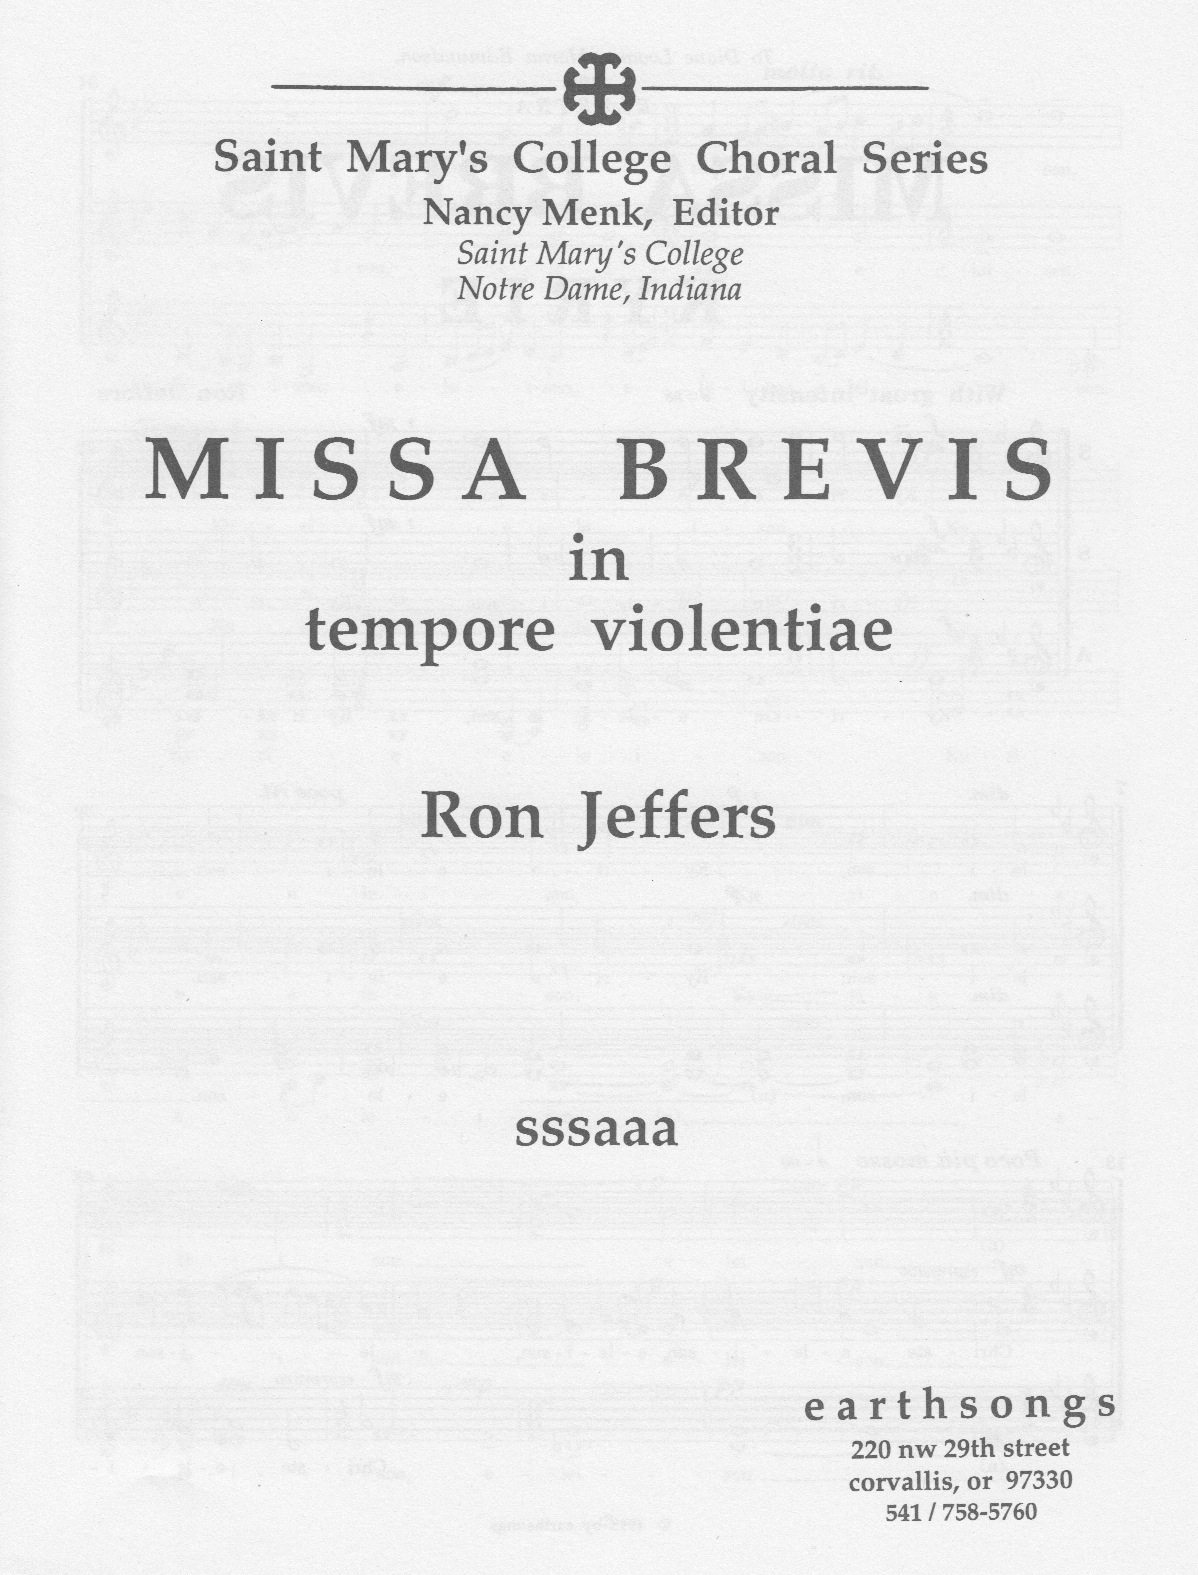 missa brevis: gloria (jeffers) (sssaaa)